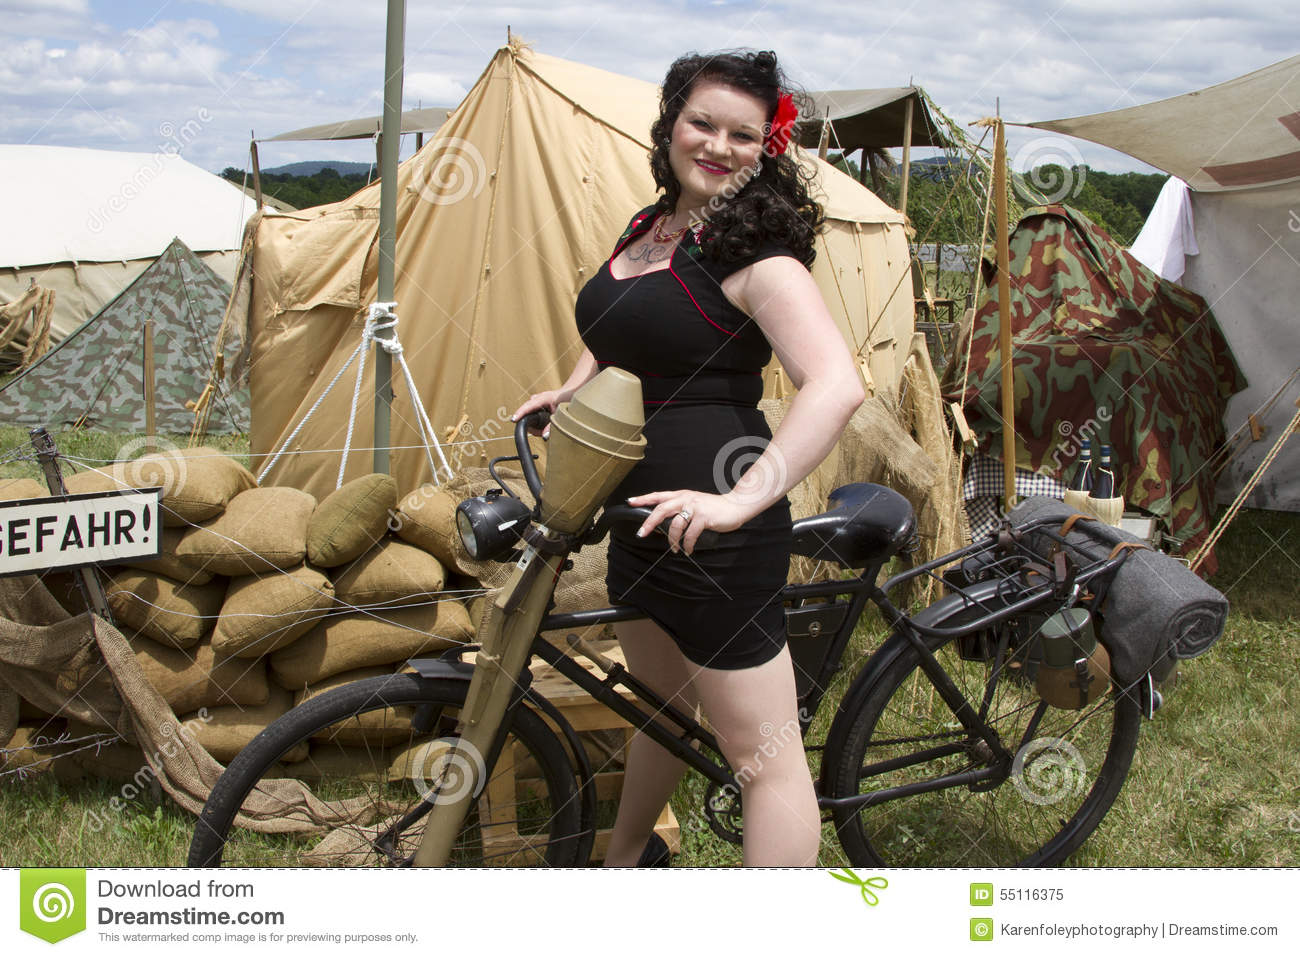 les éléments - Page 36 Pinup-riding-bike-pin-up-model-posing-retro-wwii-italian-army-camp-55116375